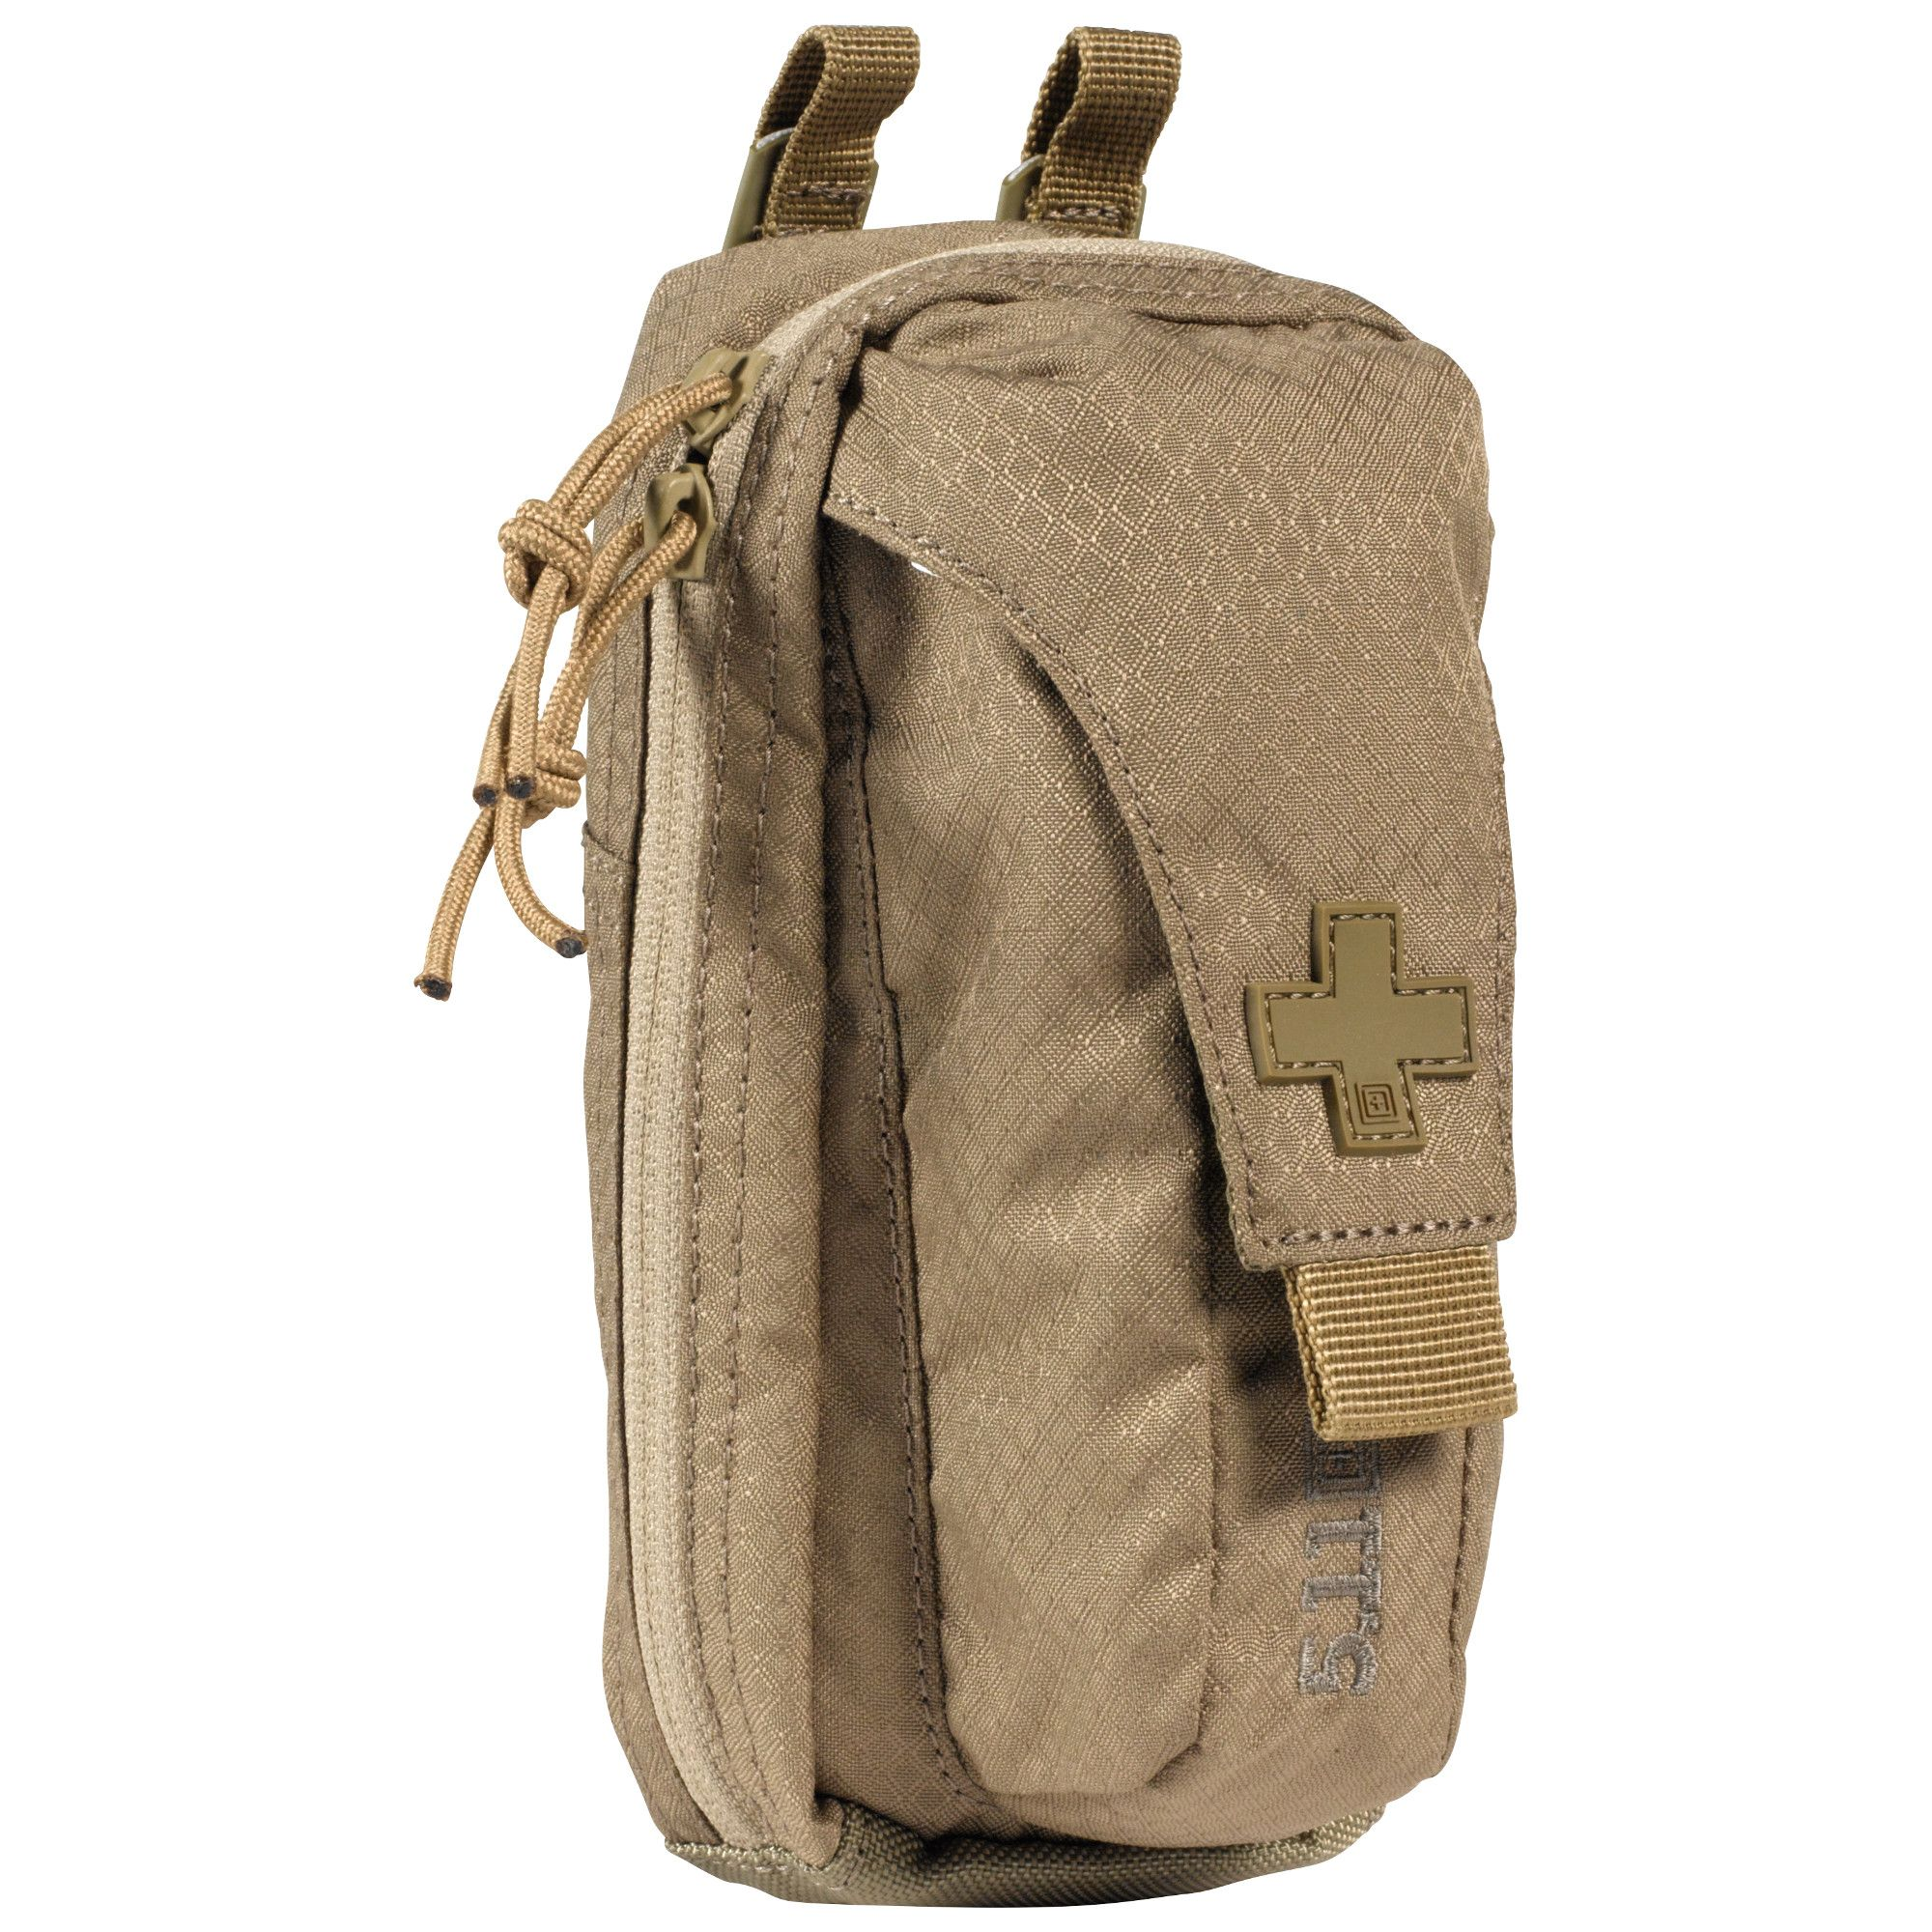 IGNITOR MED POUCH – Sandstone